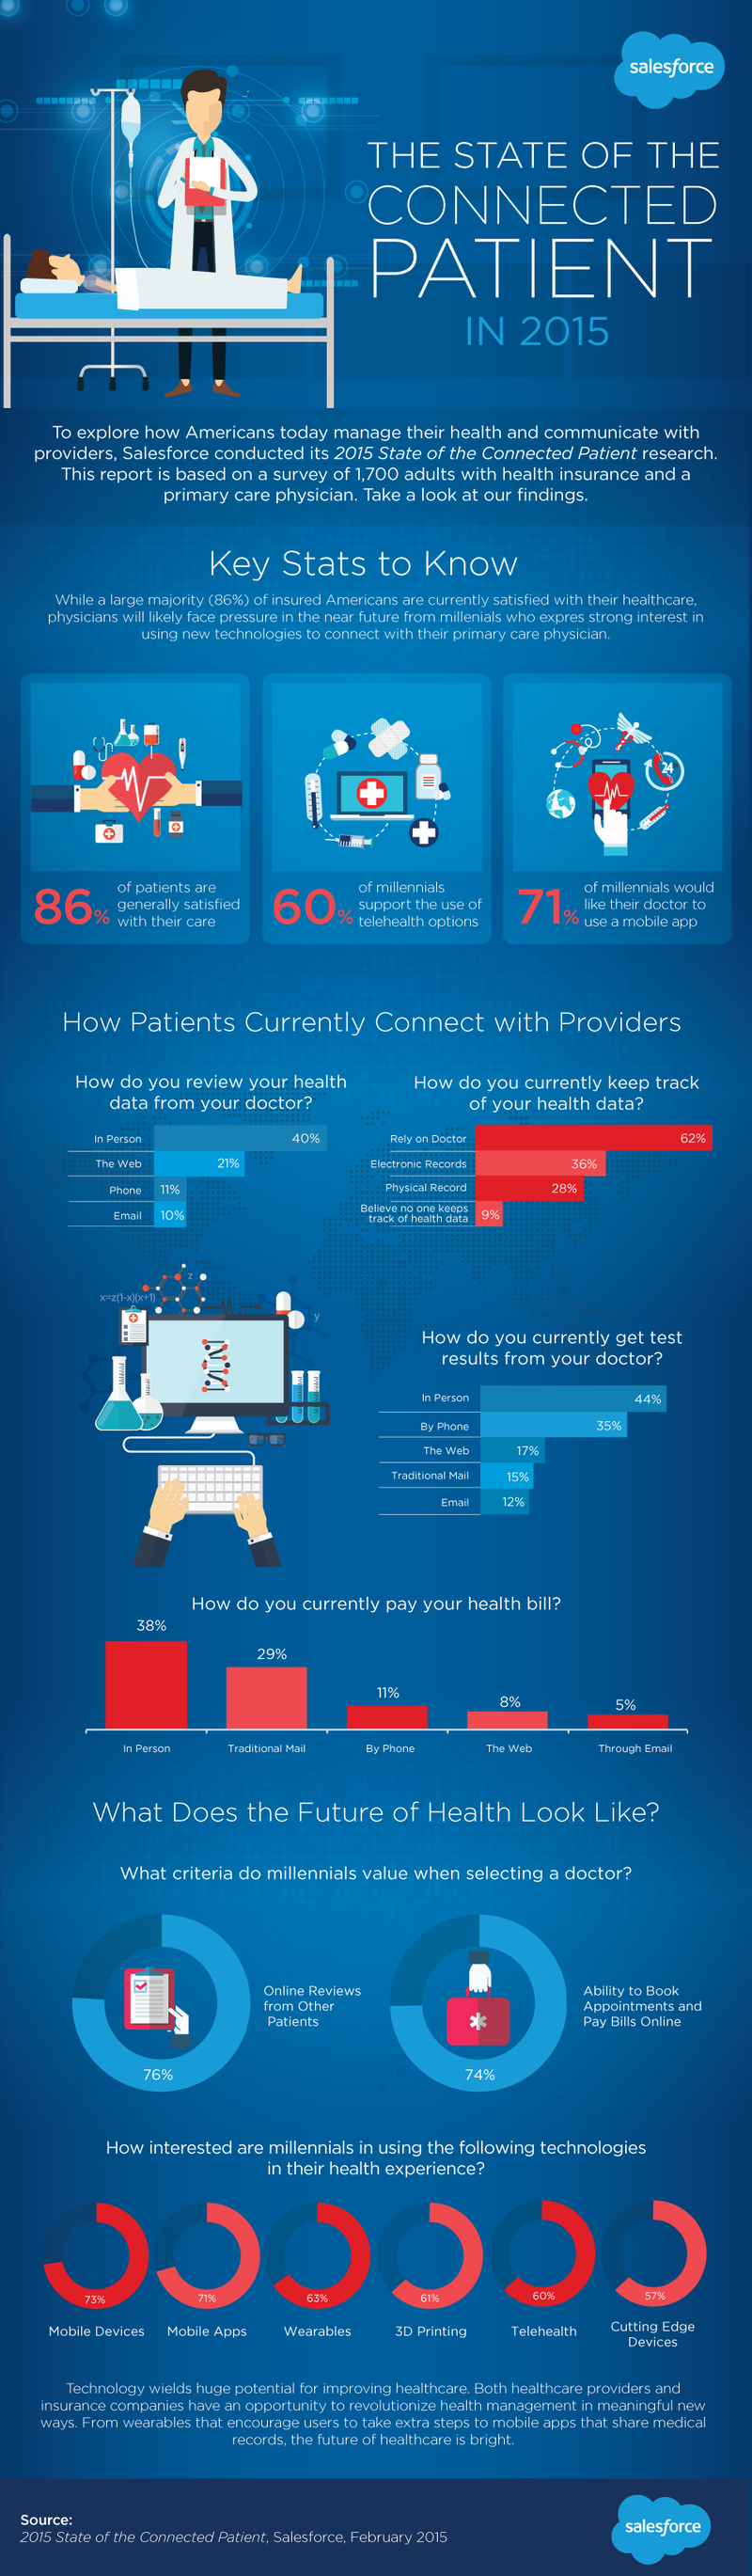 The State of the Connected Patient 2015 #infographic